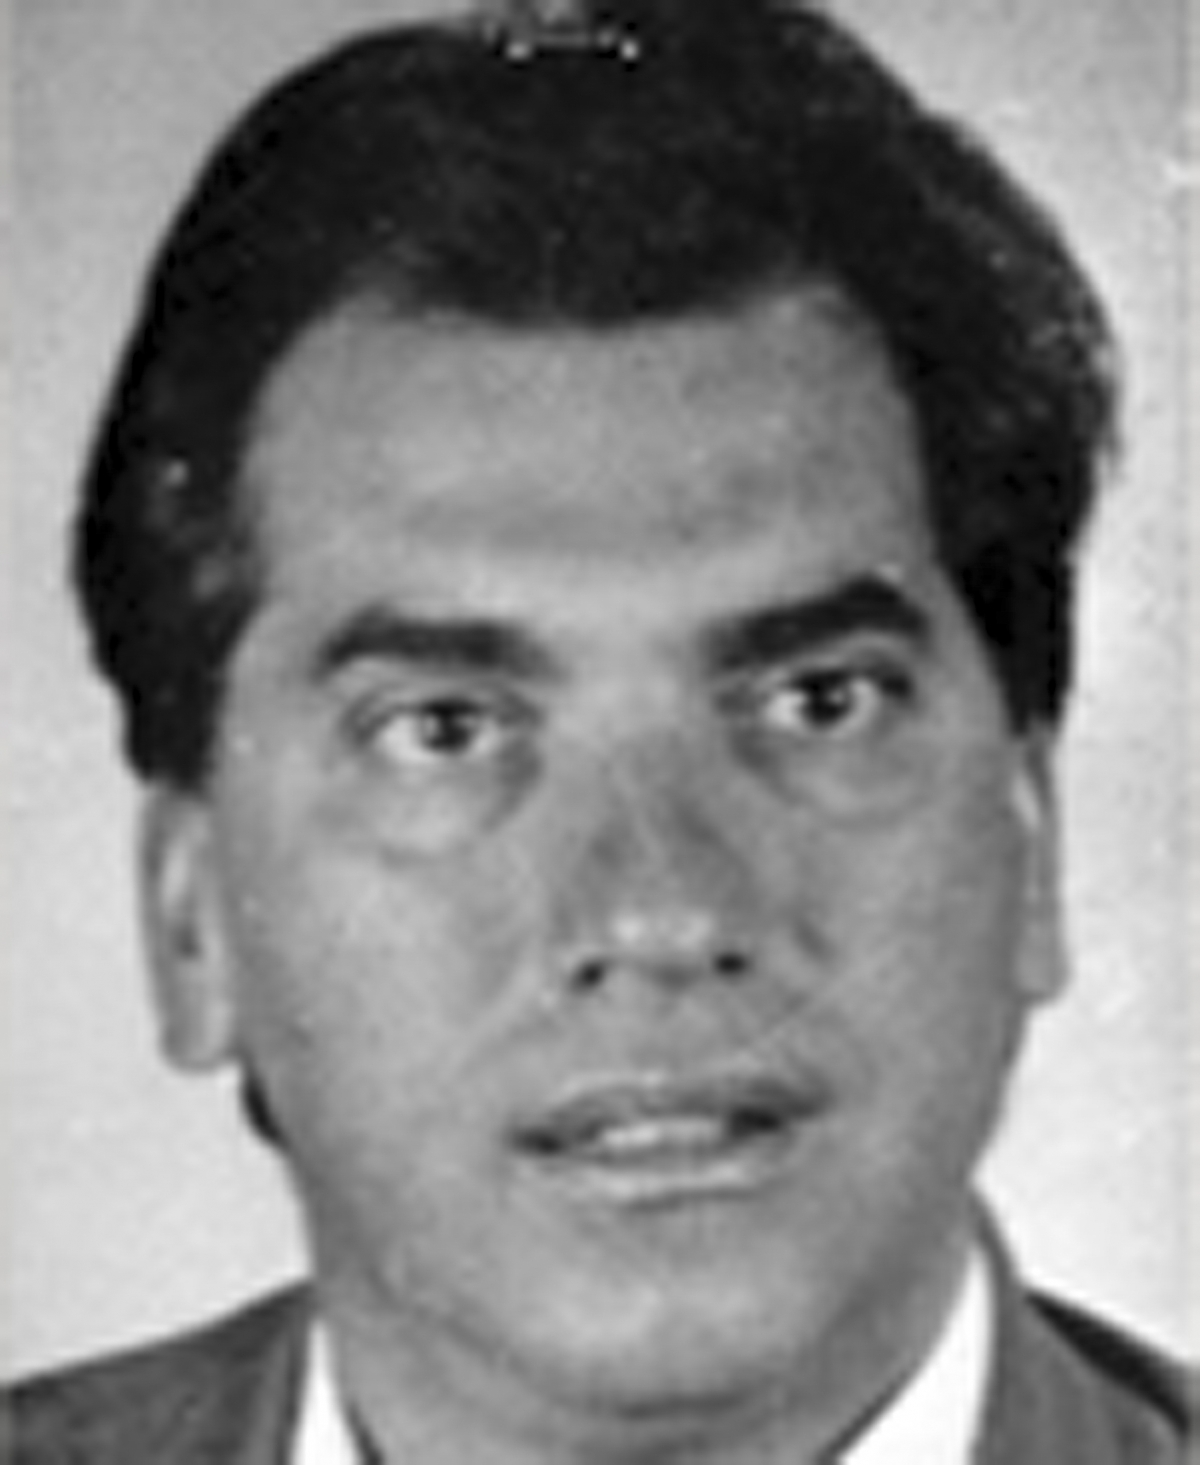 Domenico Randacore as a younger man in an undated photograph released by Italy's Interior Ministry.